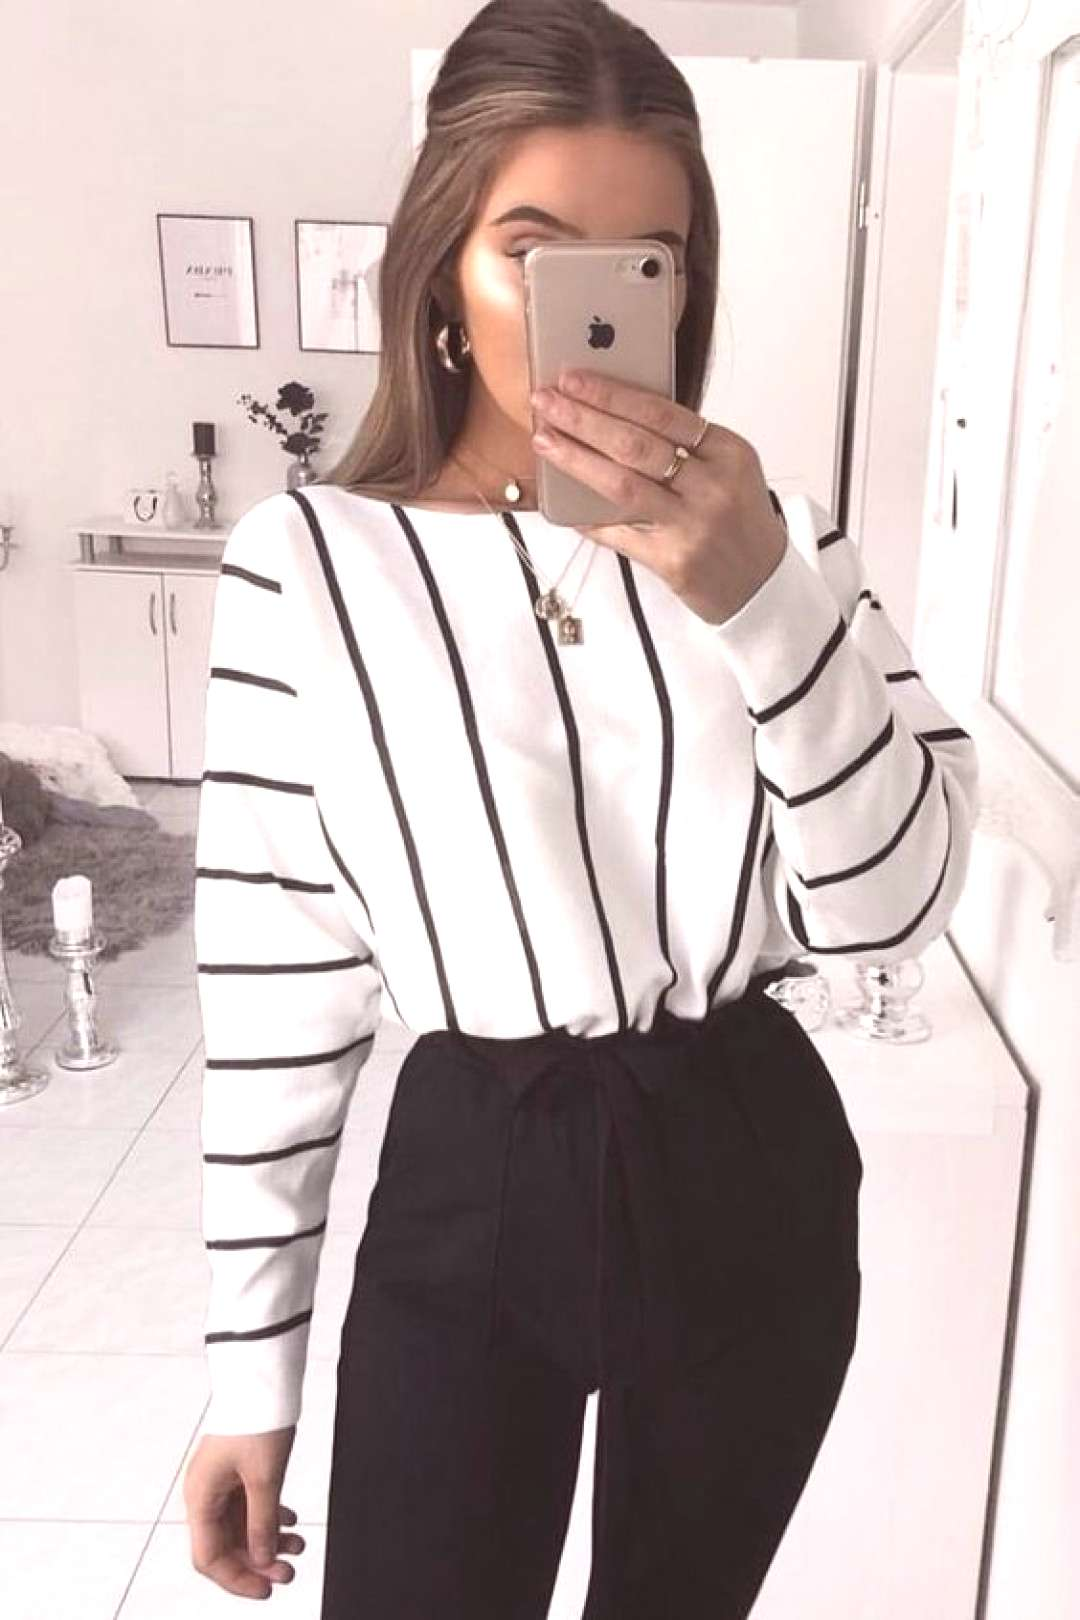 Popular pens - 25 refined work clothes and bro outfits for women that look stylish and chic - mo -